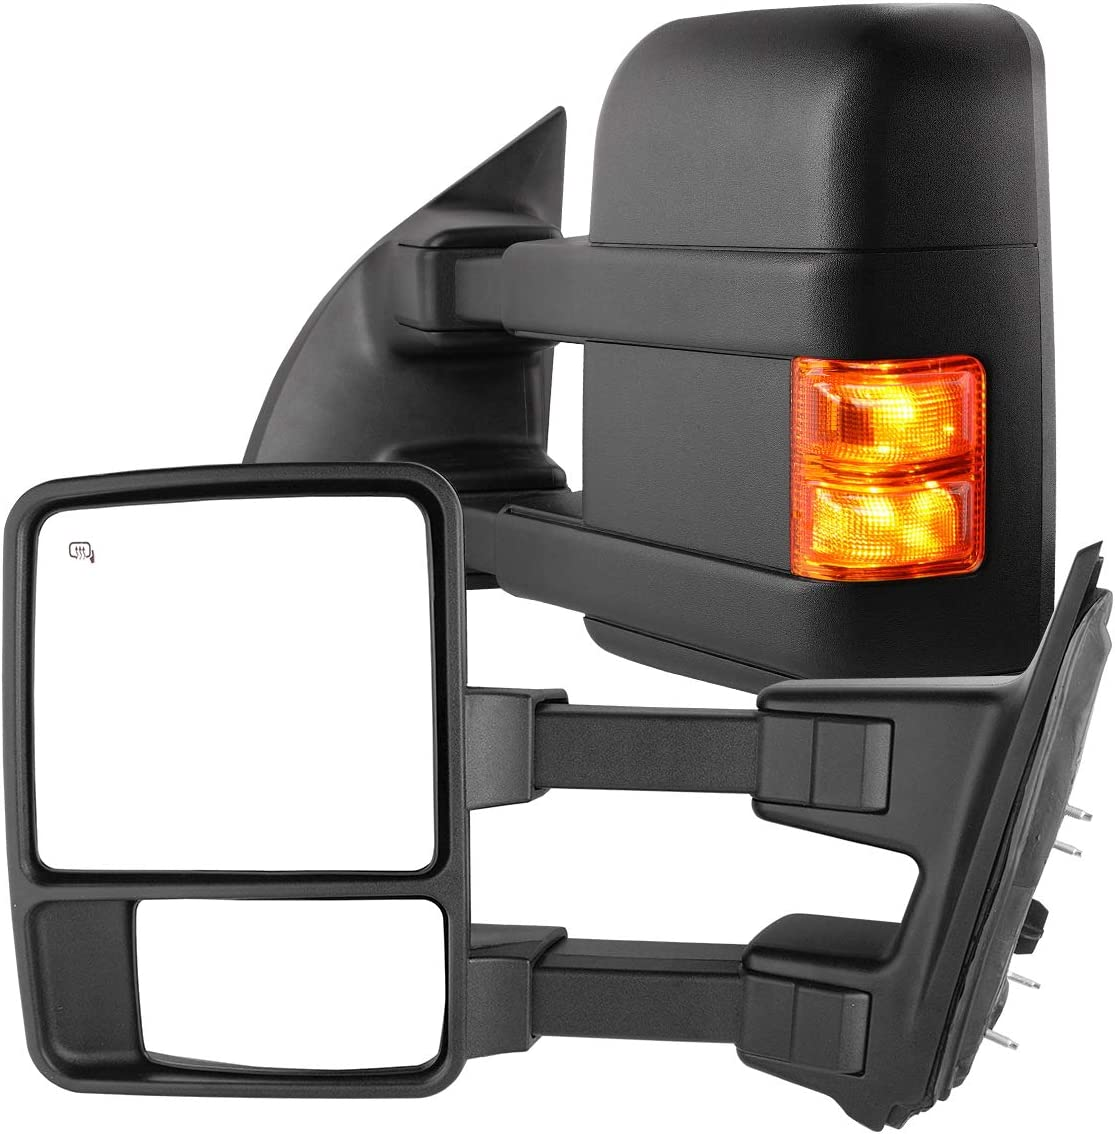 AUTOSAVER88 Tow Mirrors Compatible with 99-07 Ford F250 F350 F450 F550 Super Duty with Turn Signal Power Heated Telescoping Towing Mirrors Pair